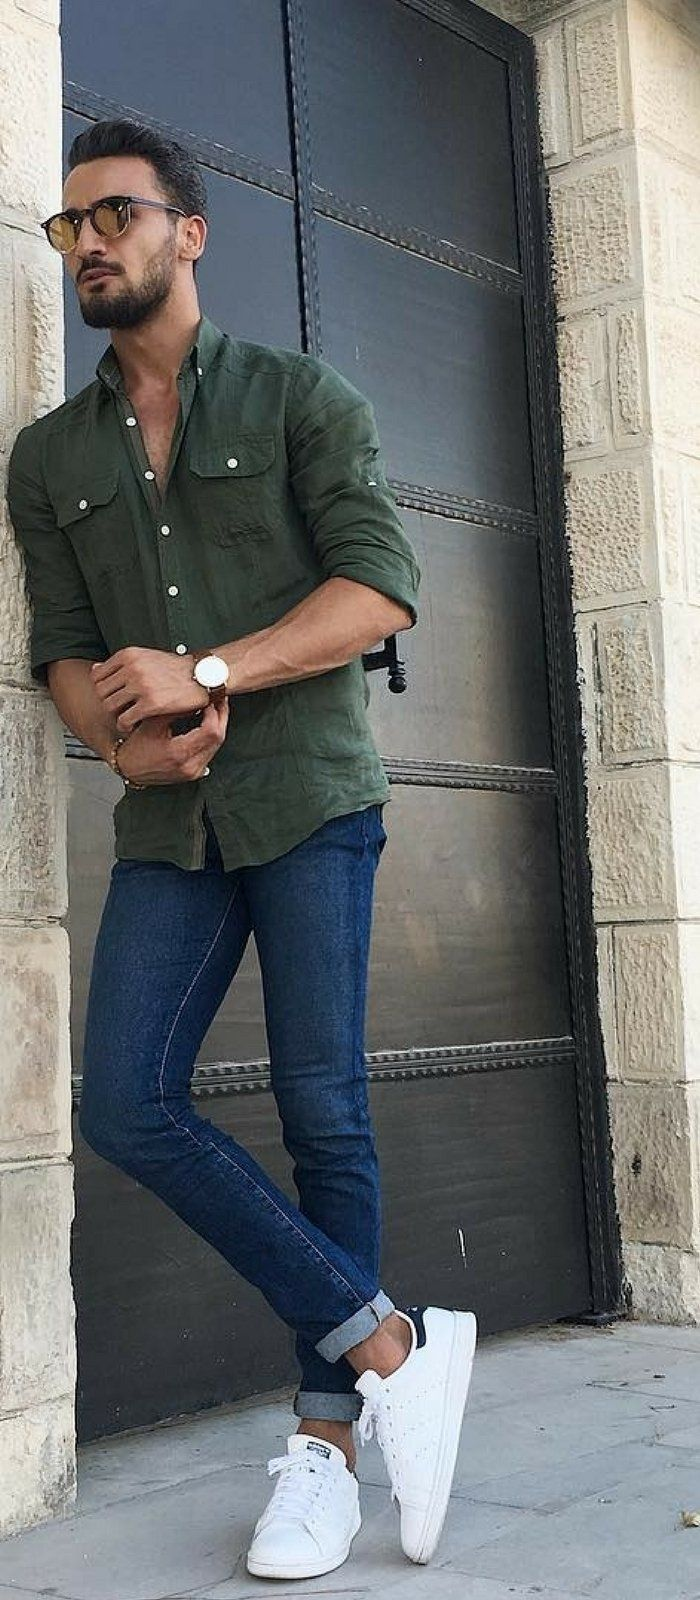 68d255322af0 11 Smart & Edgy Outfit Ideas For Men in 2019 | Sunglasses and ...